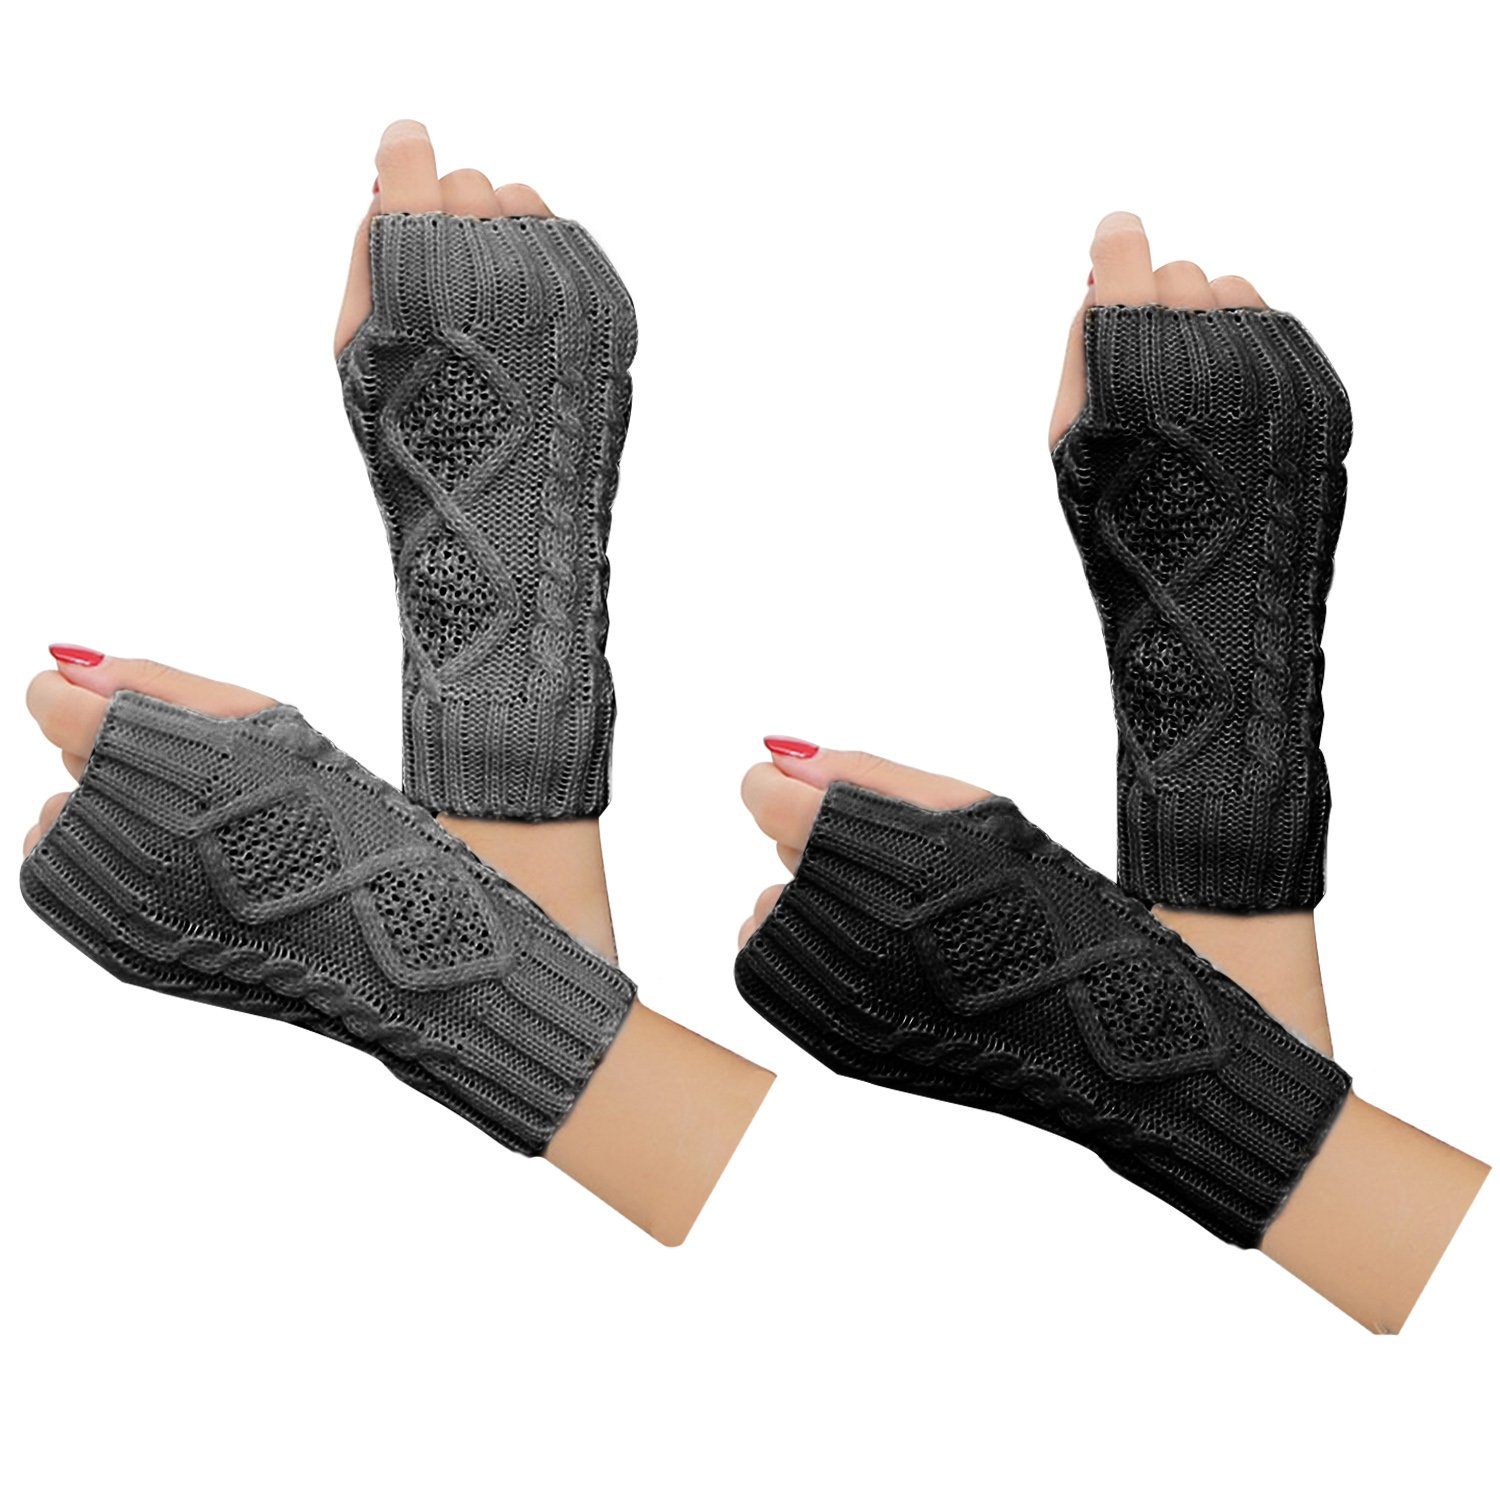 2 Pair Women's Hand Crochet Winter Warm Fingerless Arm Warmers Gloves Justay B073QGSHP5